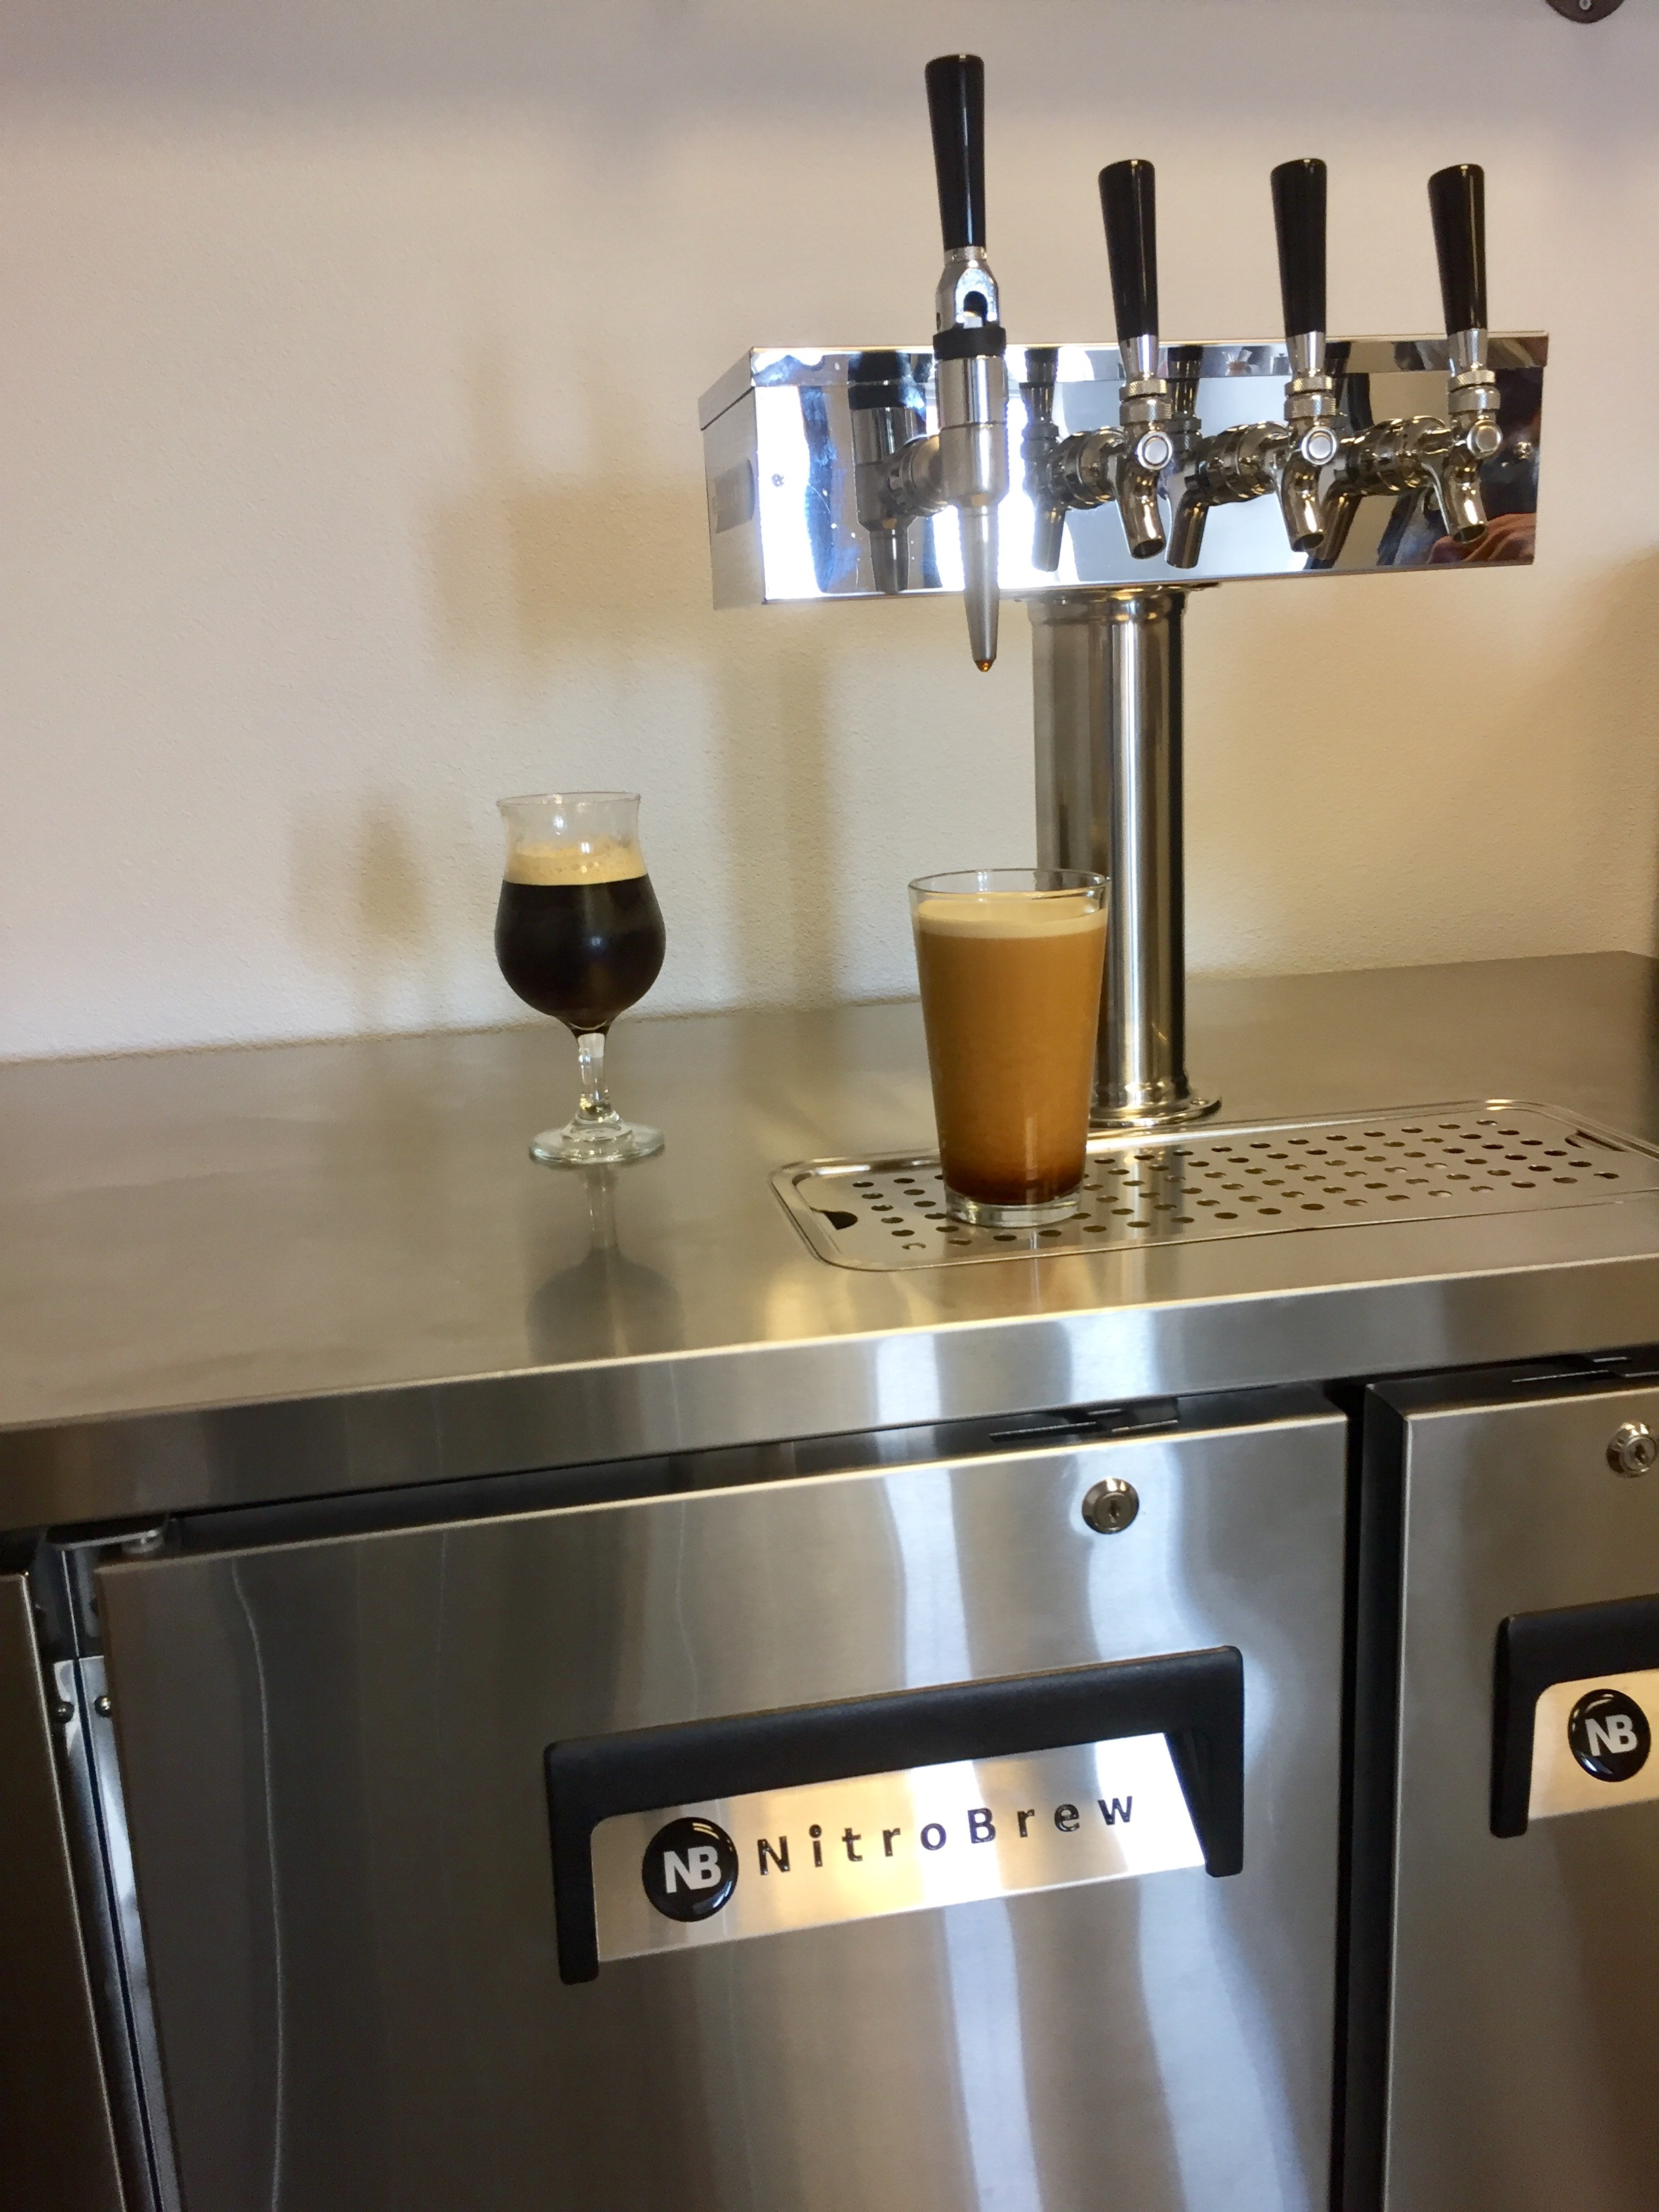 Beer tap systems for home - As With Quantiperm S Our Parent Company Xflowco2 Commercial Carbonation And Nitrogenation Systems The Nitrobrew Infusion System Is Robust Reliable And